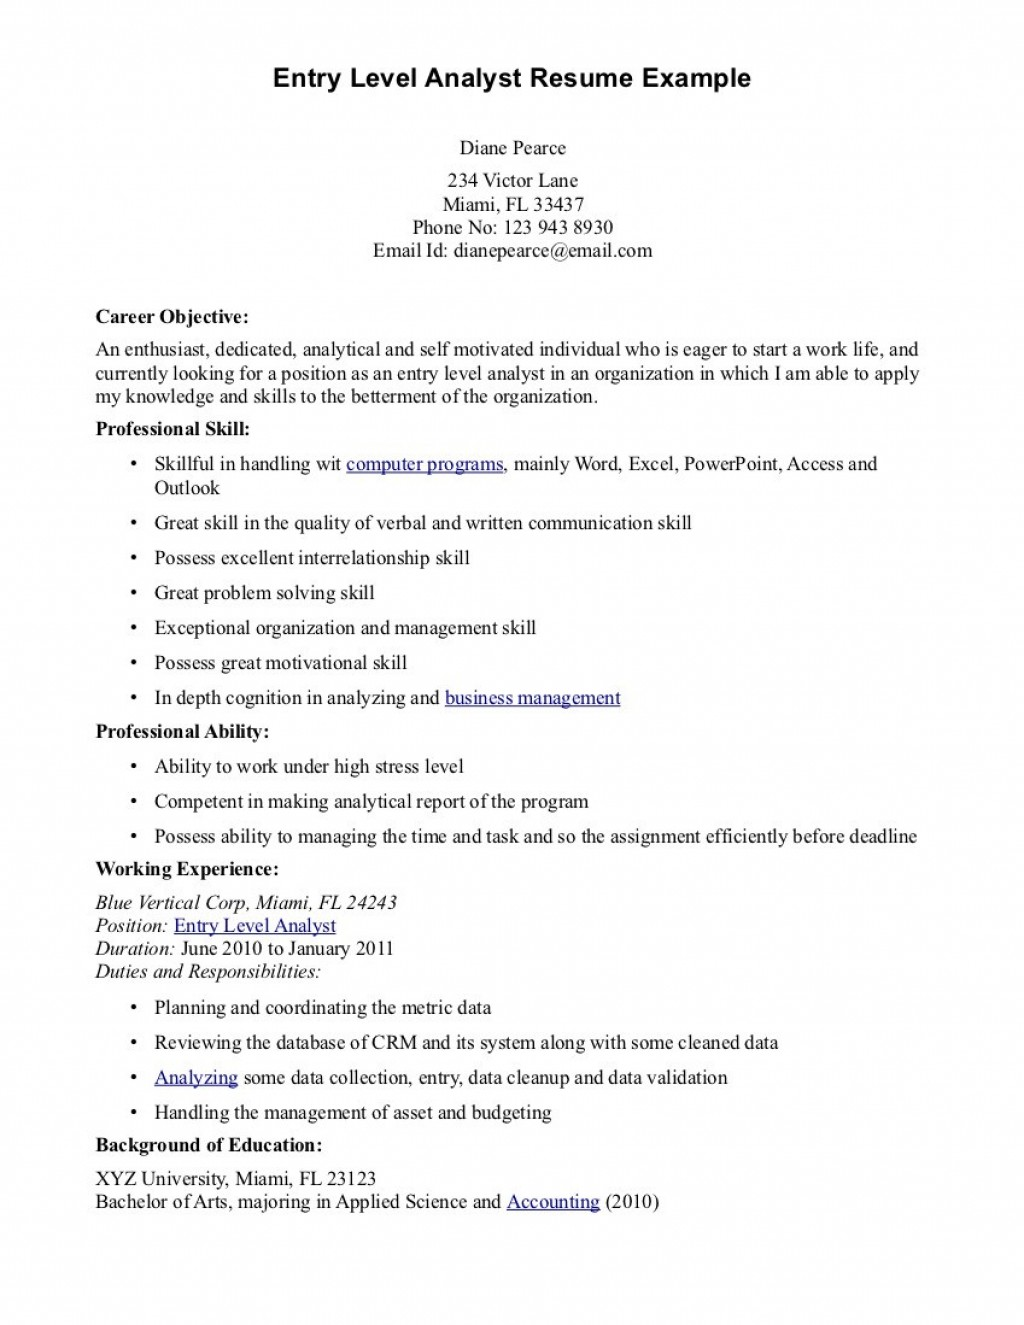 016 Cyber Security Research Paper Example Entry Level Resume Objective Examples Dreaded Large